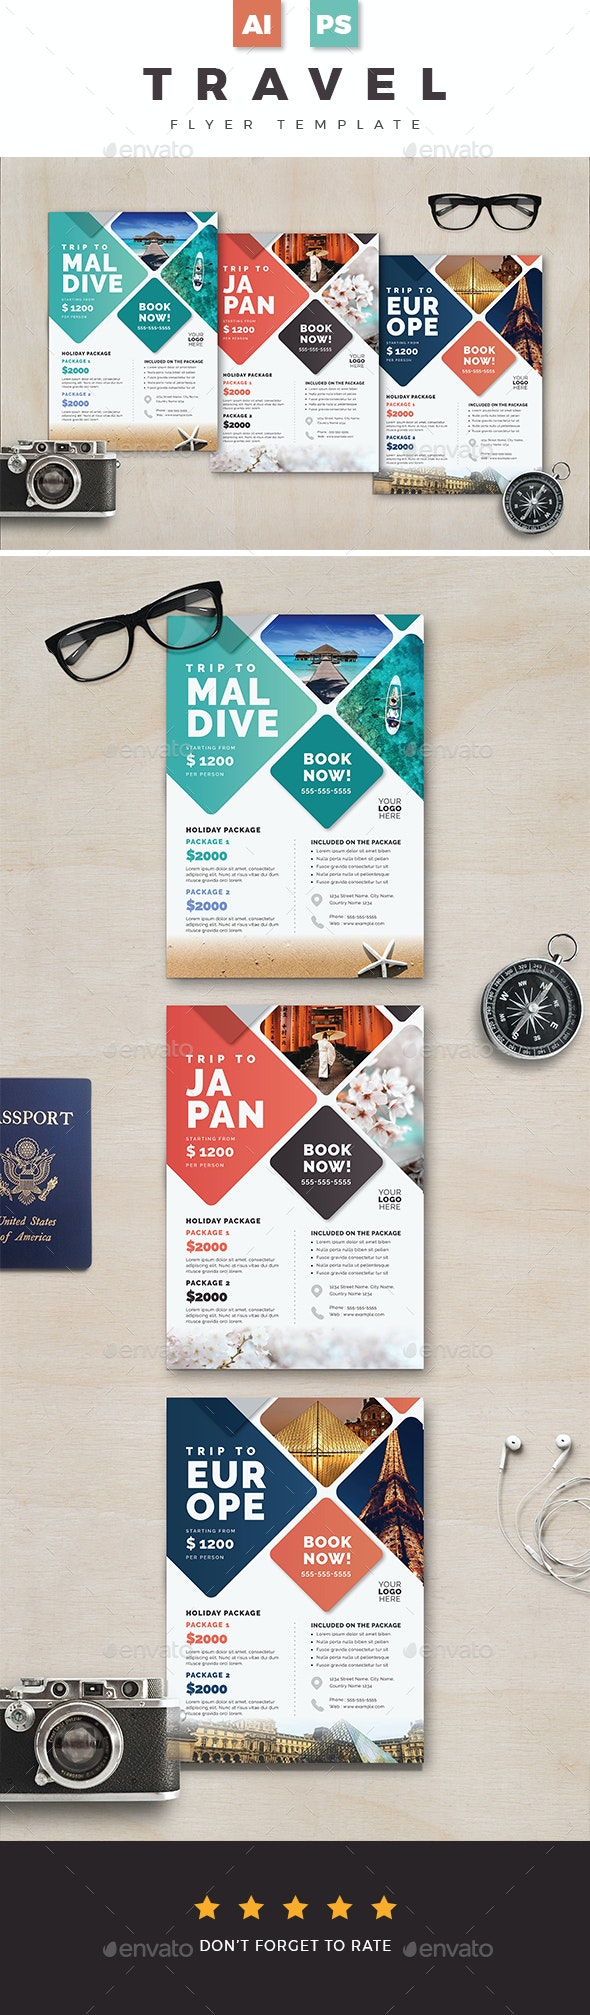 Travel Flyer 03 - Holidays Events